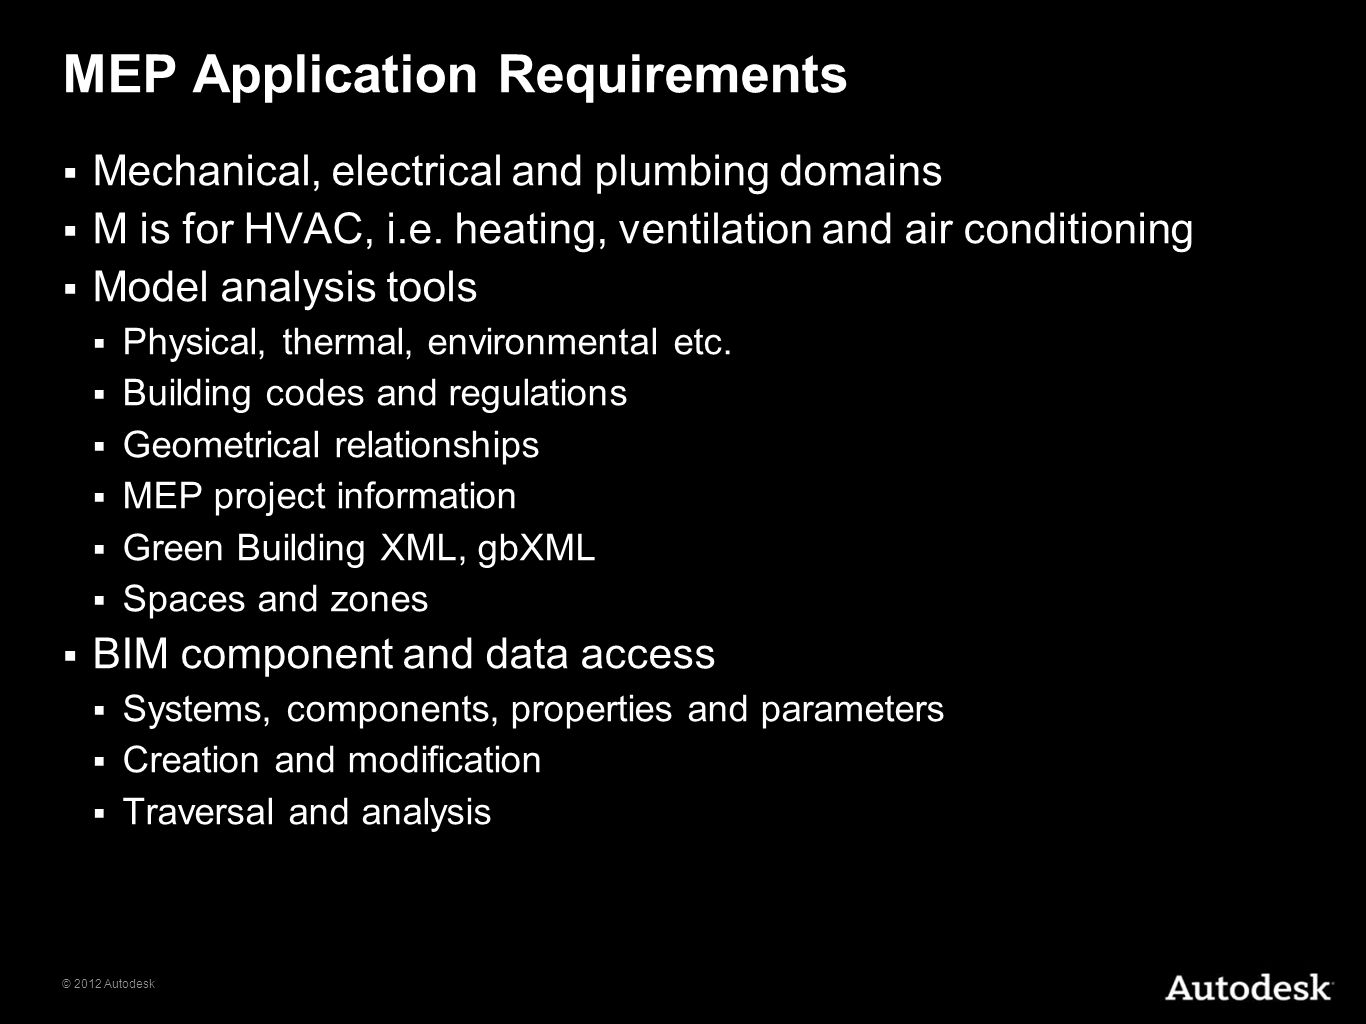 MEP Application Requirements